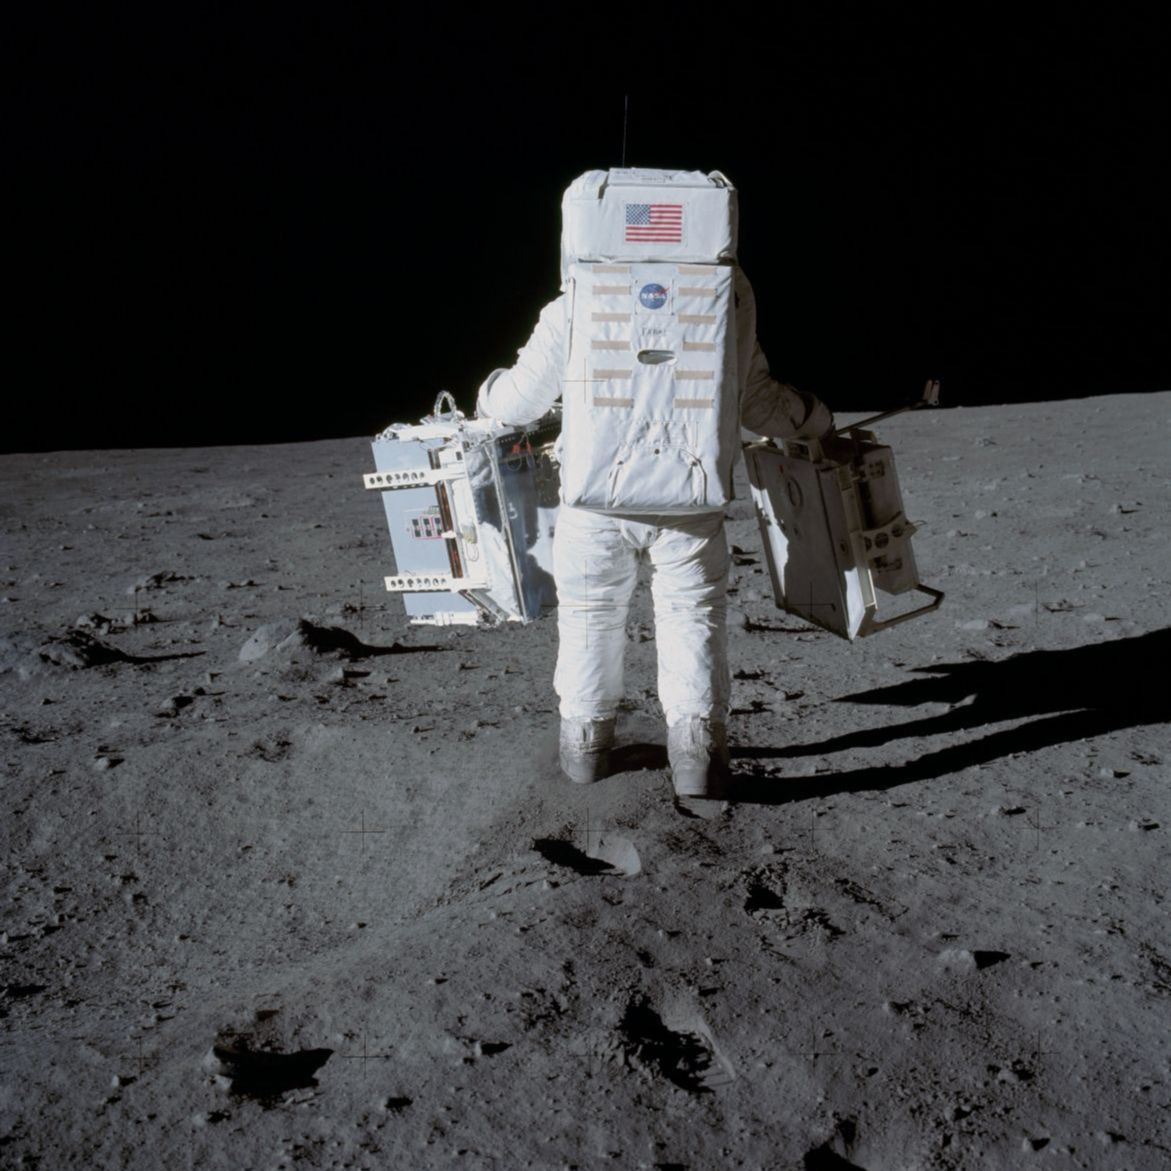 Photograph of Astronaut Edwin Aldrin carrying equipment on the moon